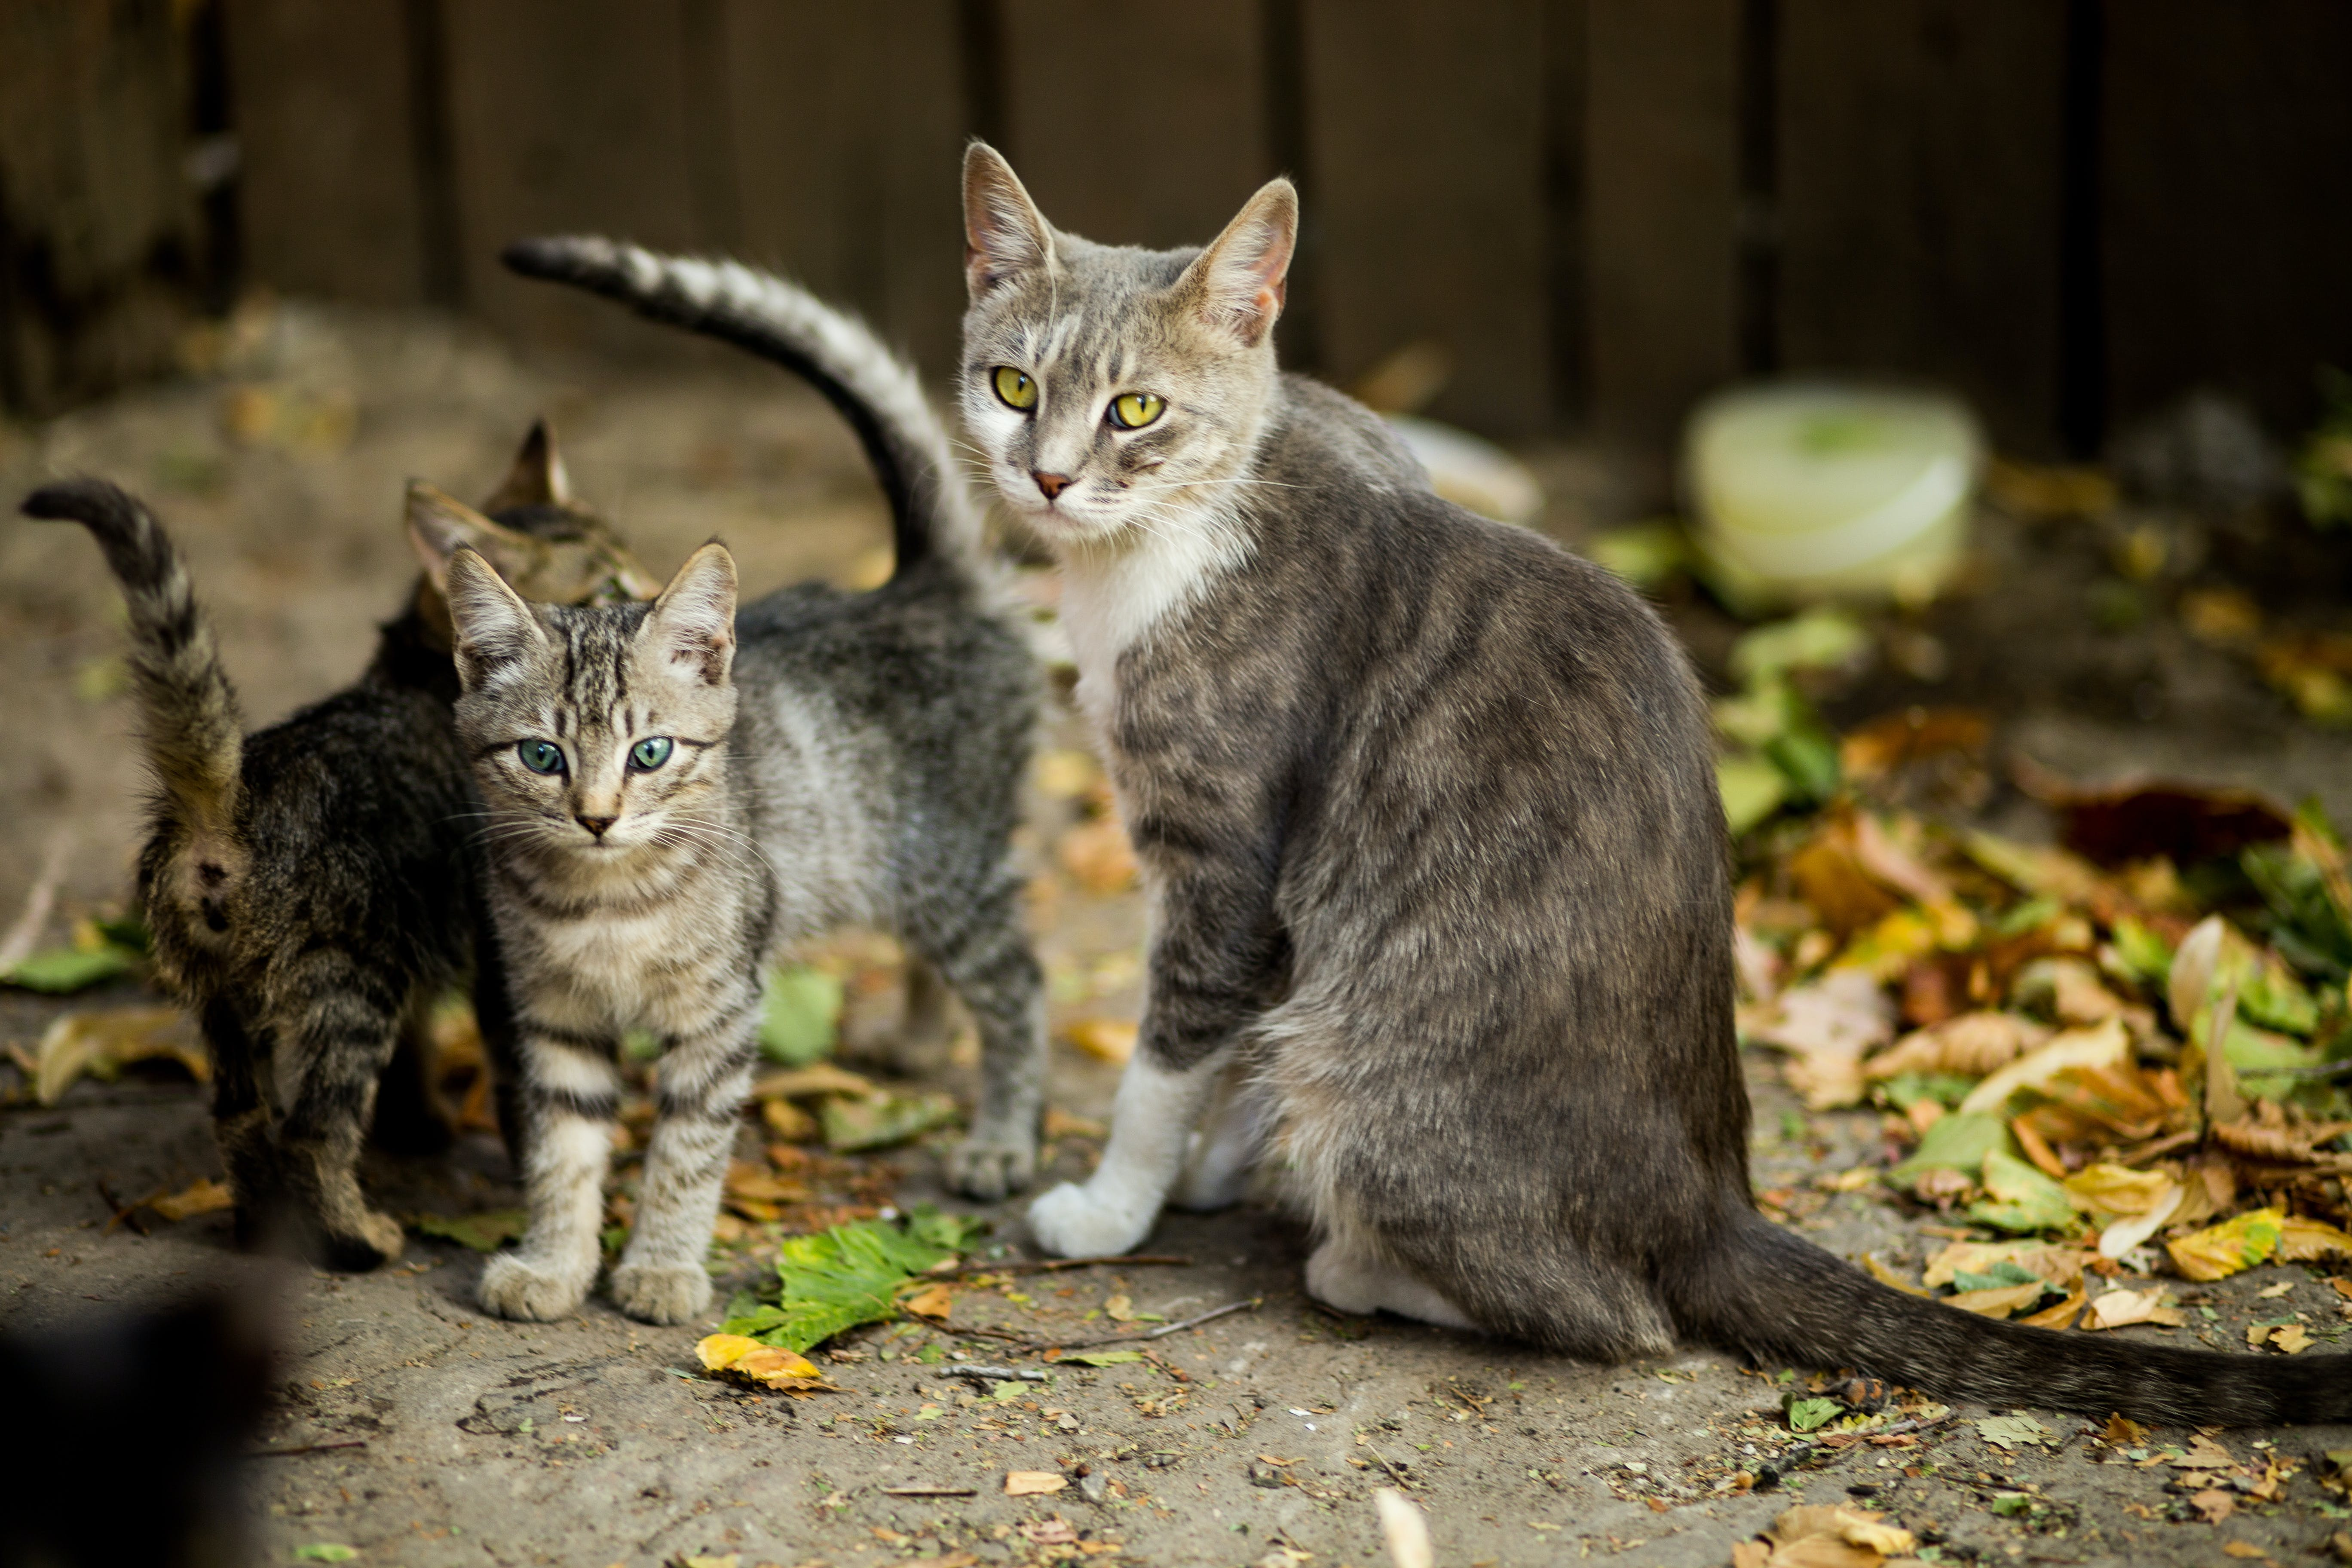 Selective Focus Photo of Silver Tabby Cat and Kittens